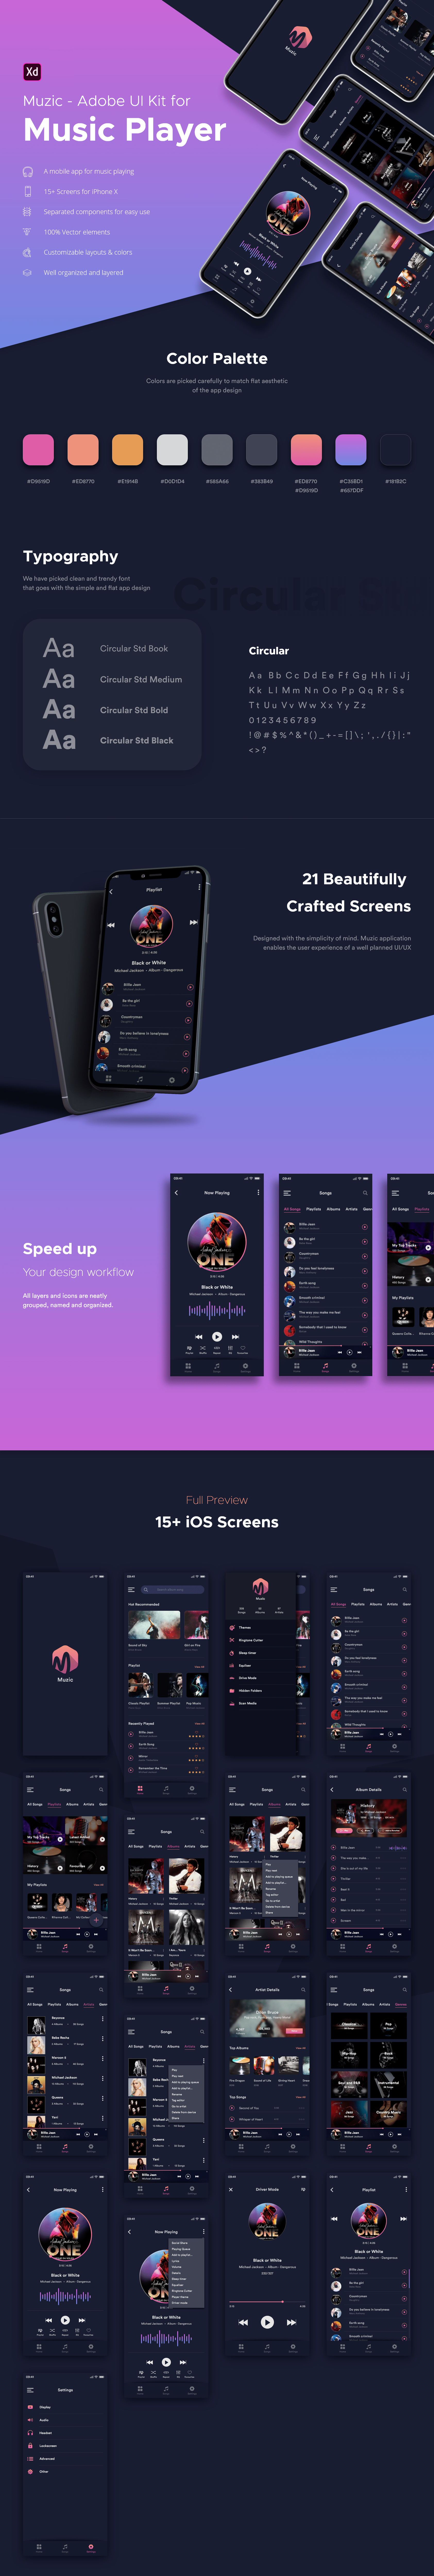 Muzic - Free Mobile UI Kit - Minimal and clean music app design, 15+ screens for you to get started.